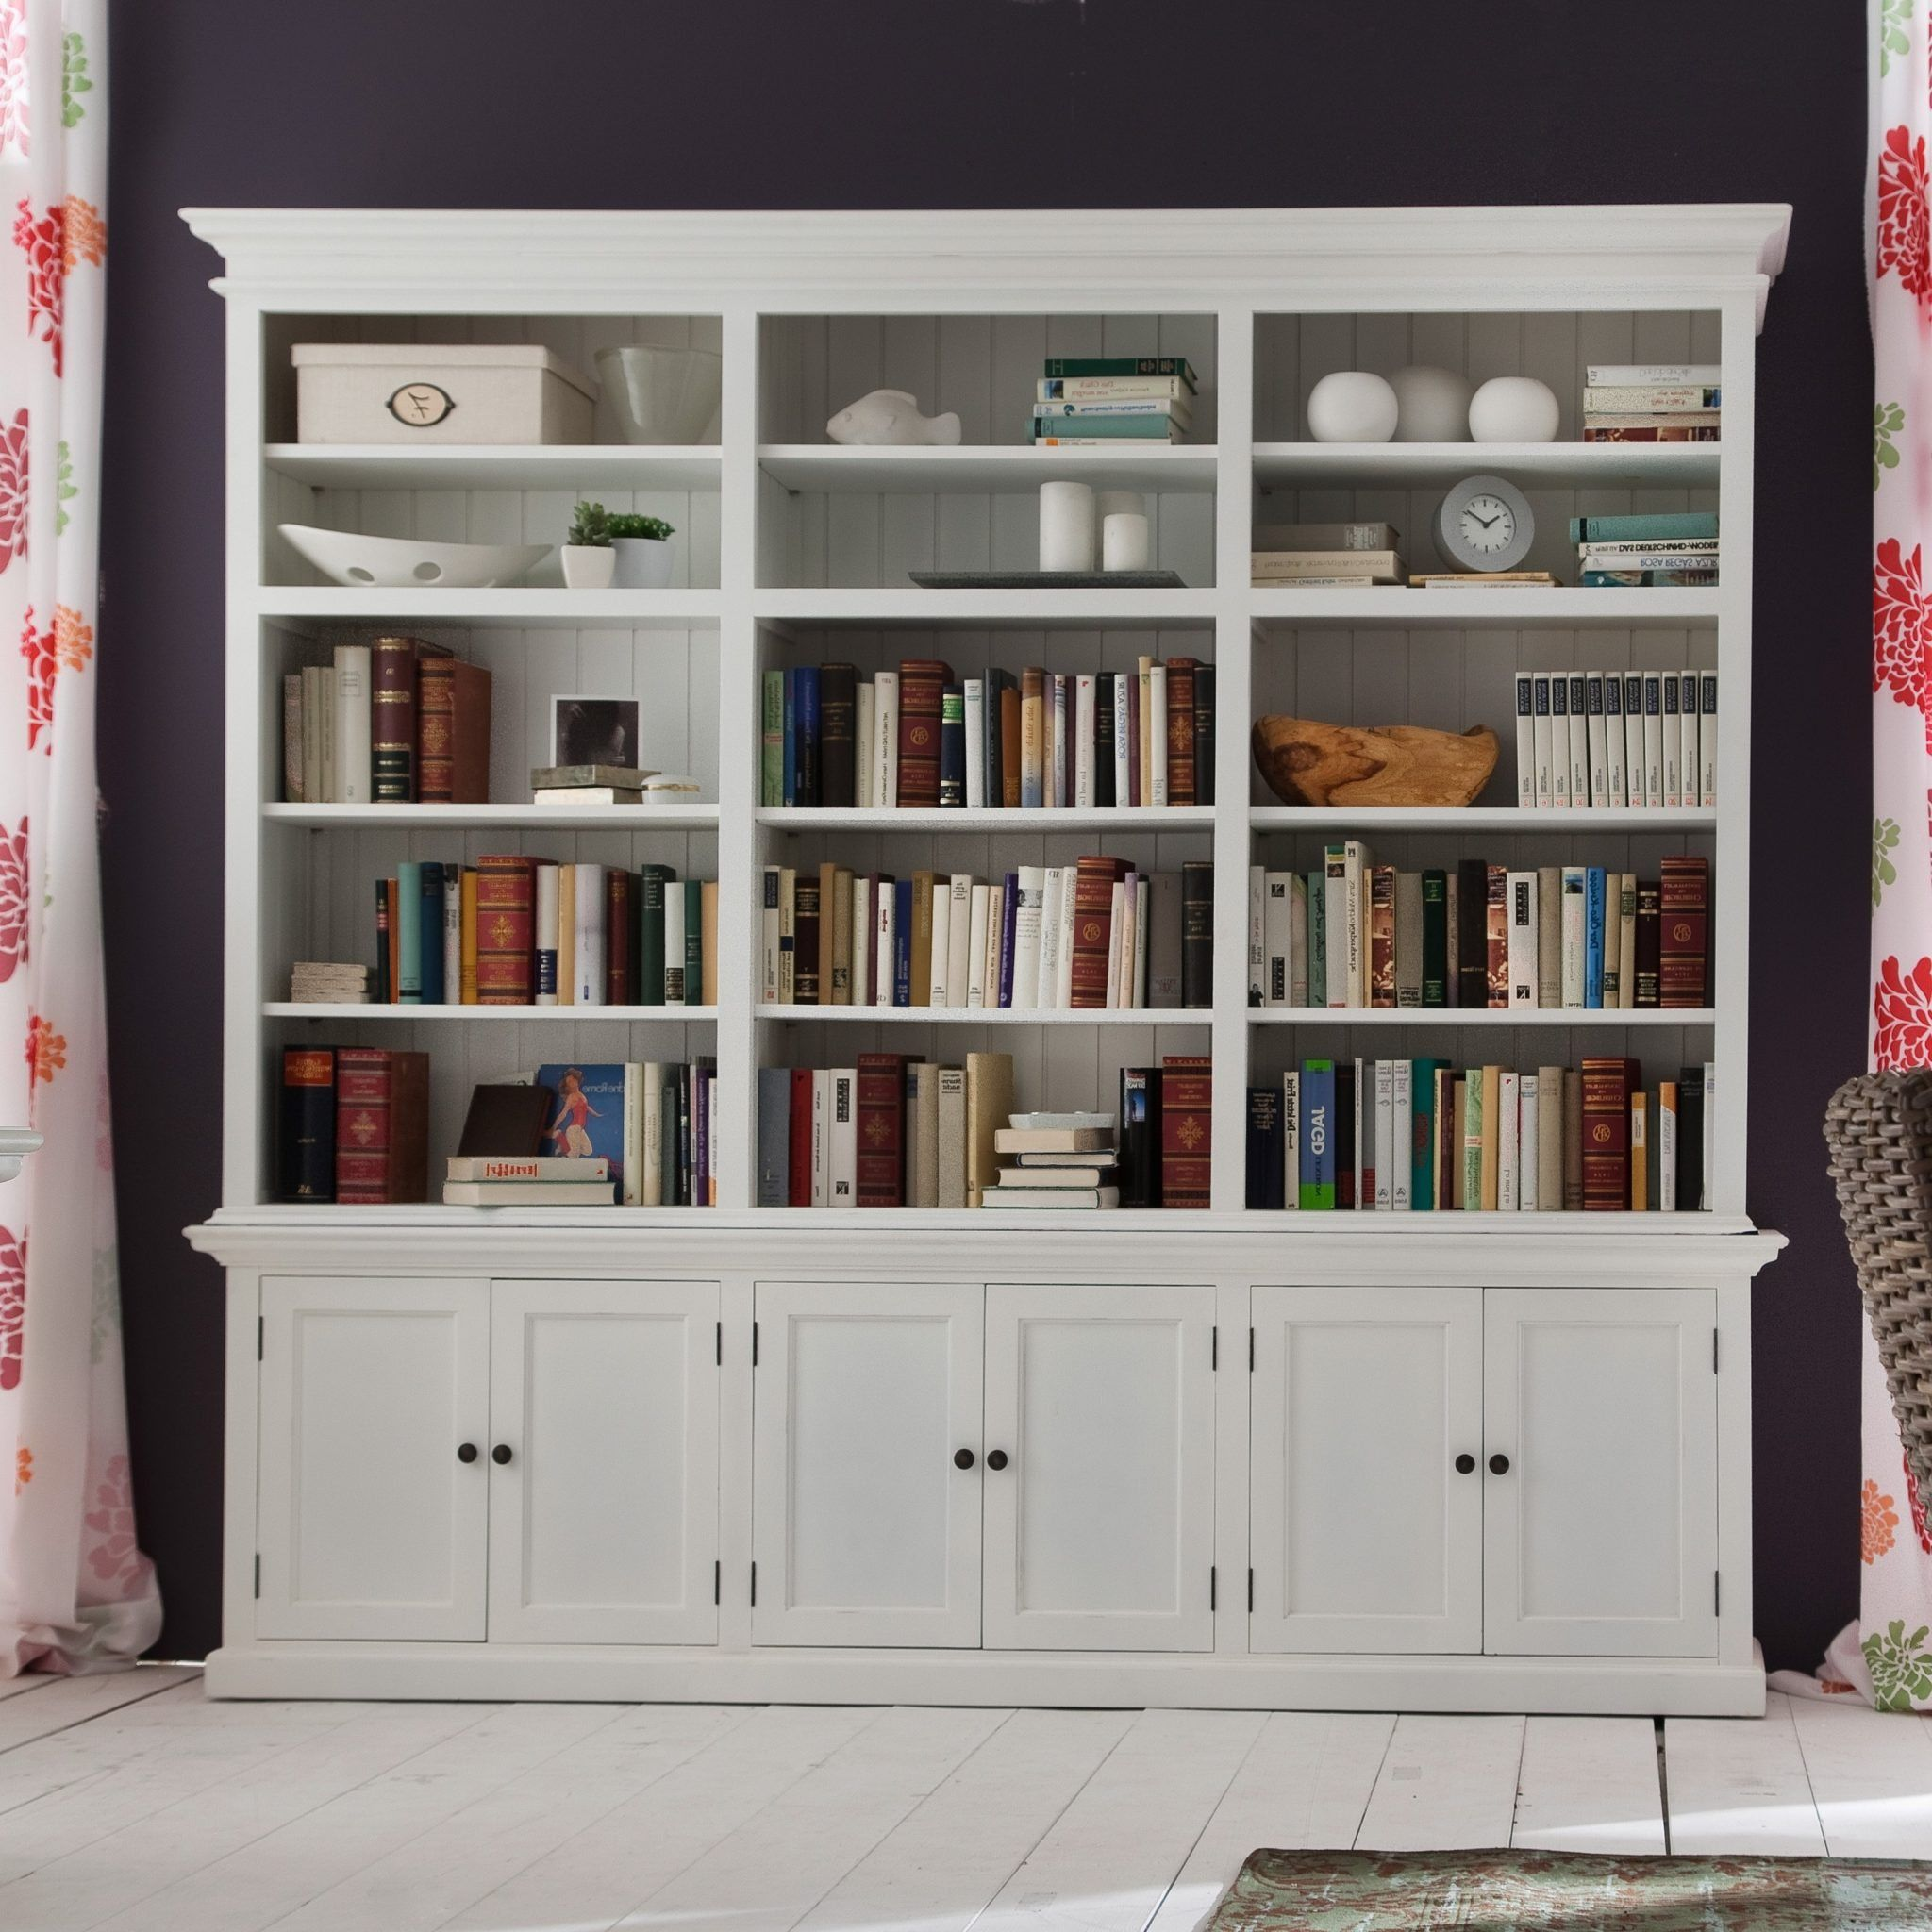 6 Foot Tall Bookcase